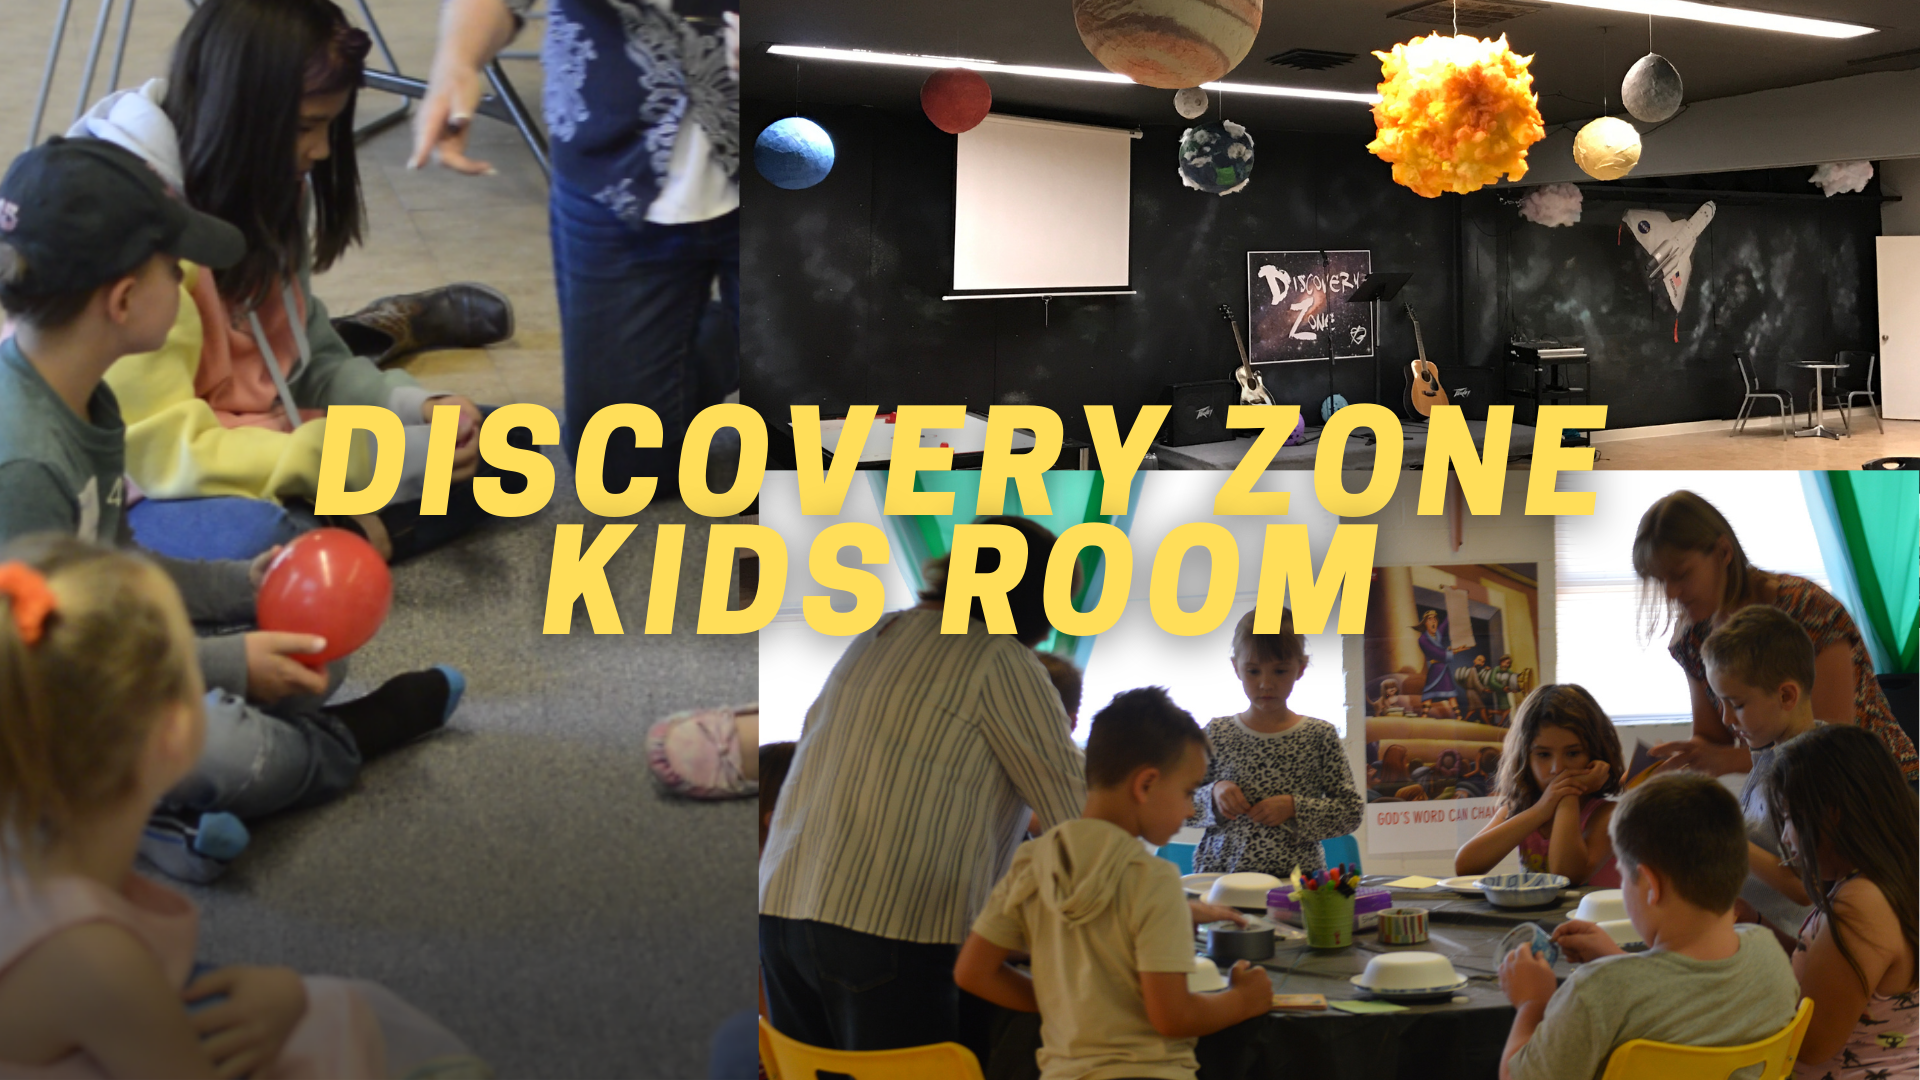 Discovery Zone Kids Room